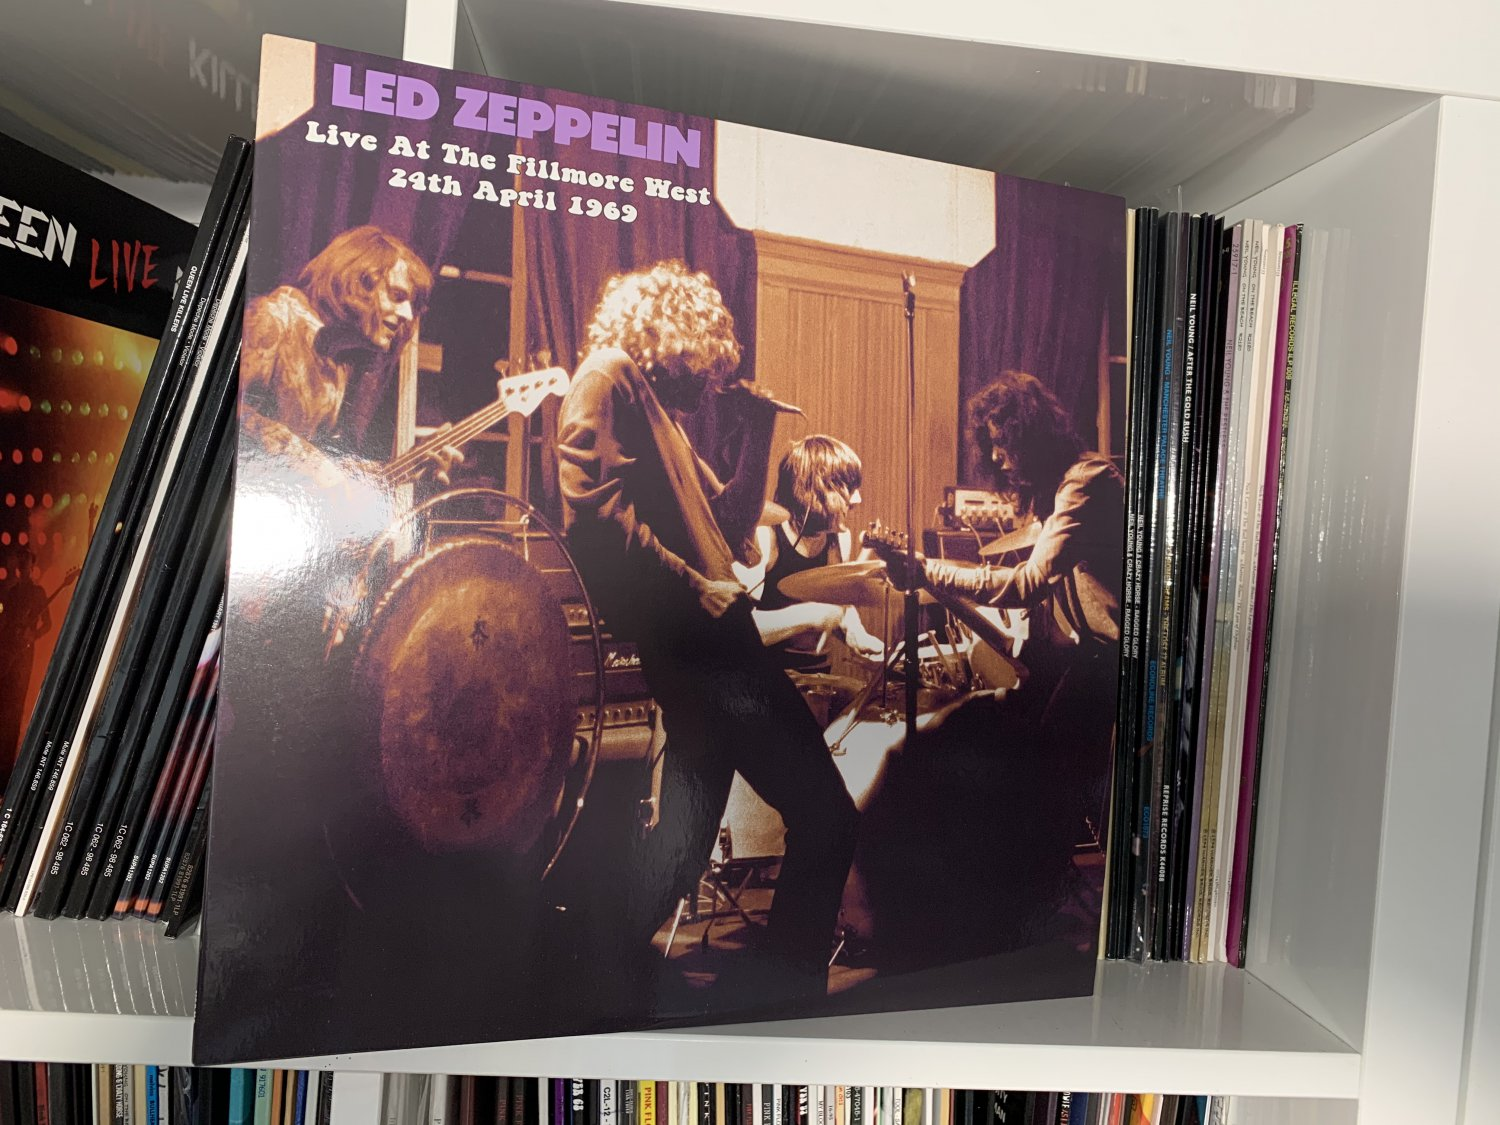 LED ZEPPELIN LP live at the fillmore west 1969